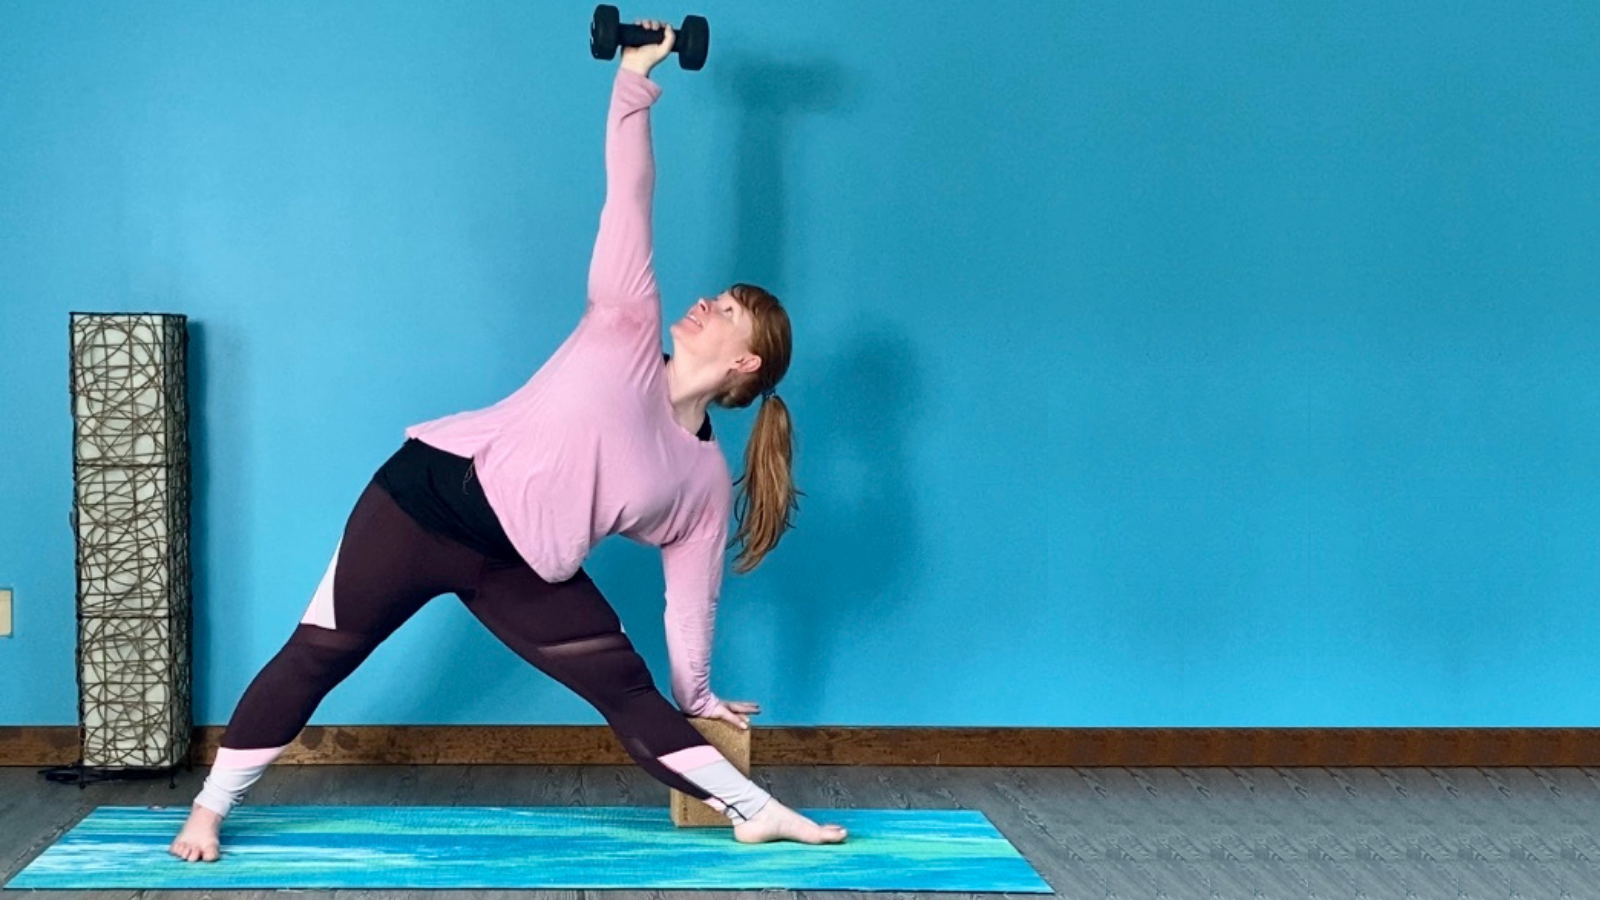 Yoga practitioner in Triangle Pose (Trikonasana) with arm weight to wake up the arms